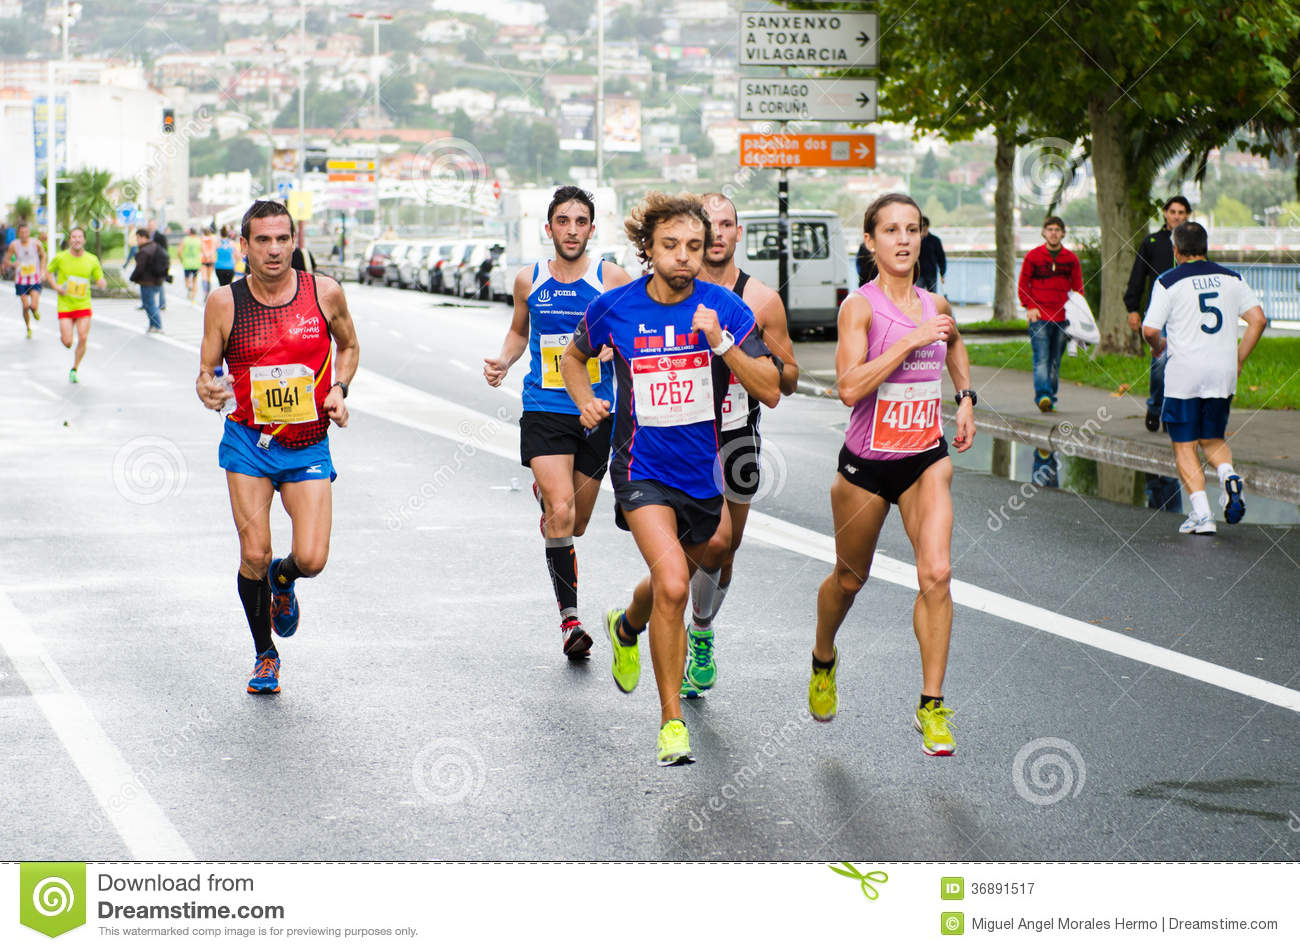 Download Maratona urbana fotografia editoriale. Immagine di concorrenza - 36891517